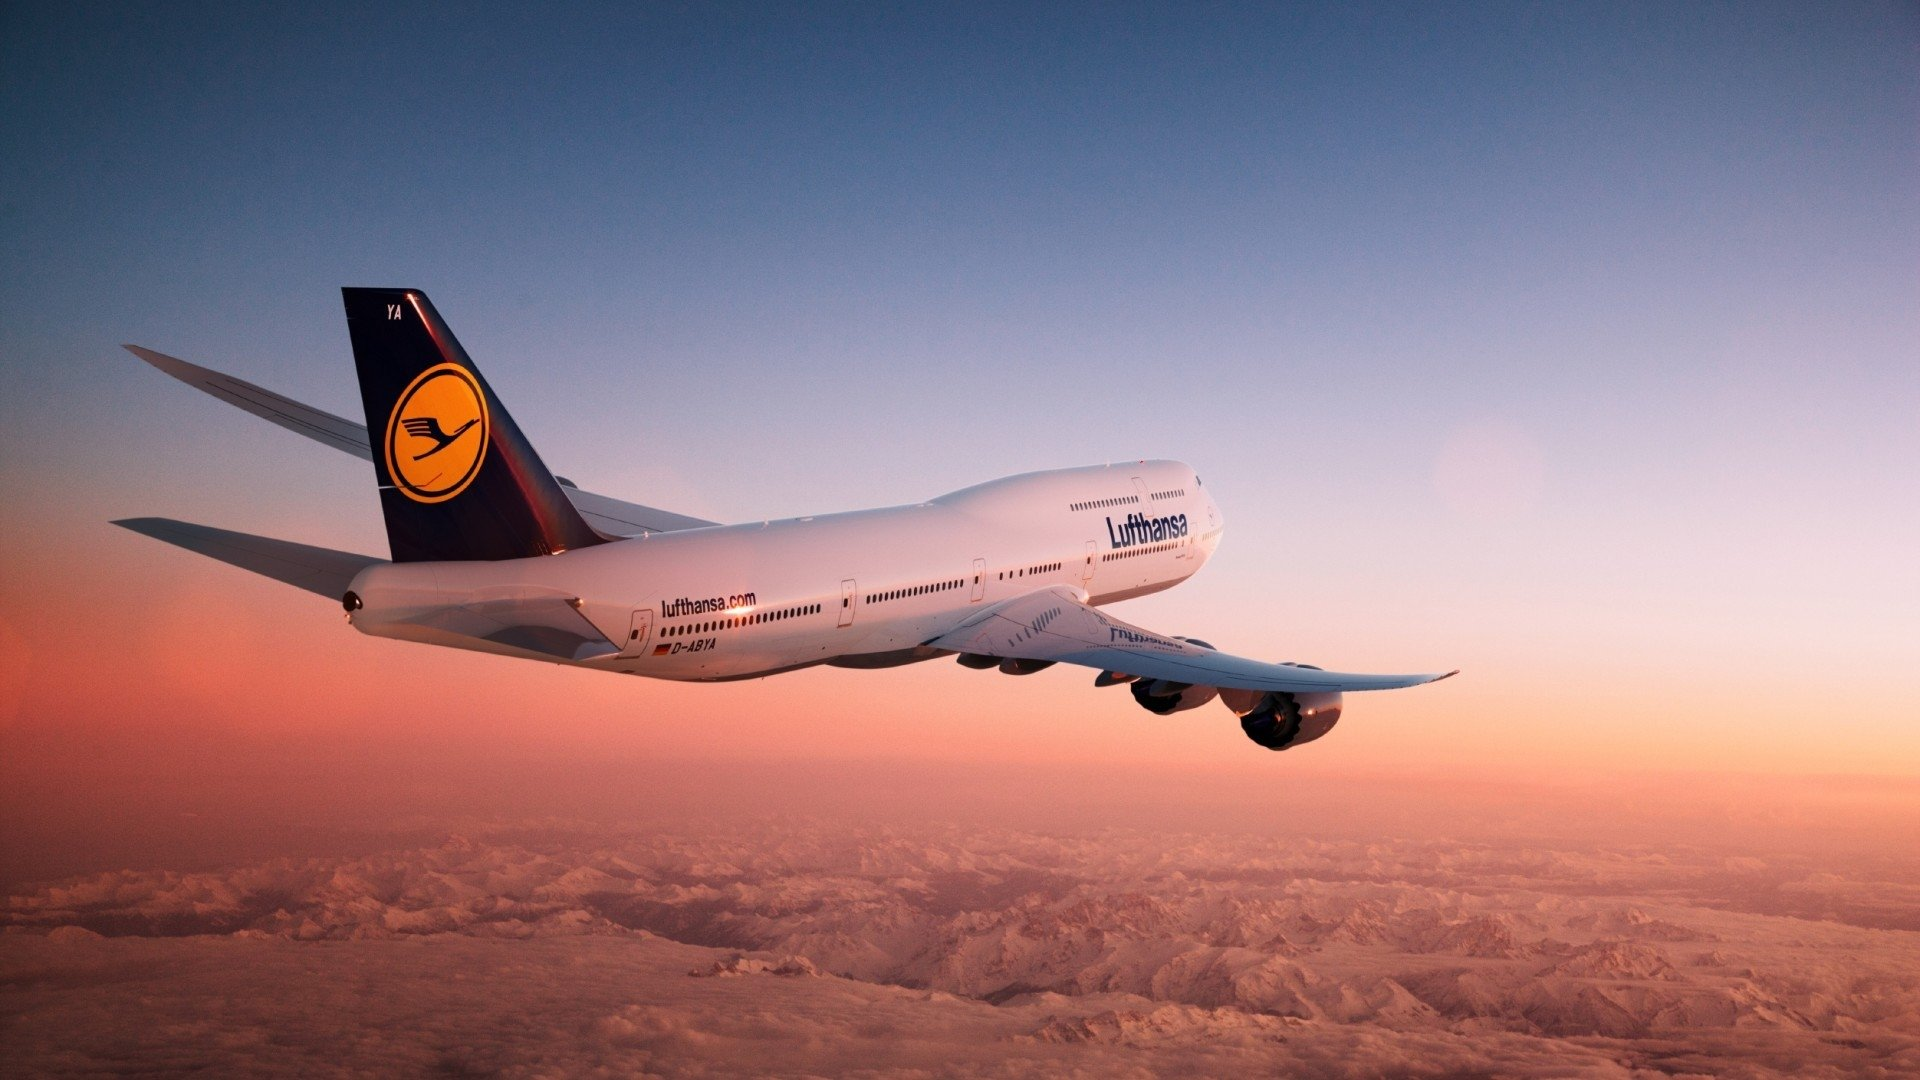 1920x1080 - Boeing 747 Wallpapers 10